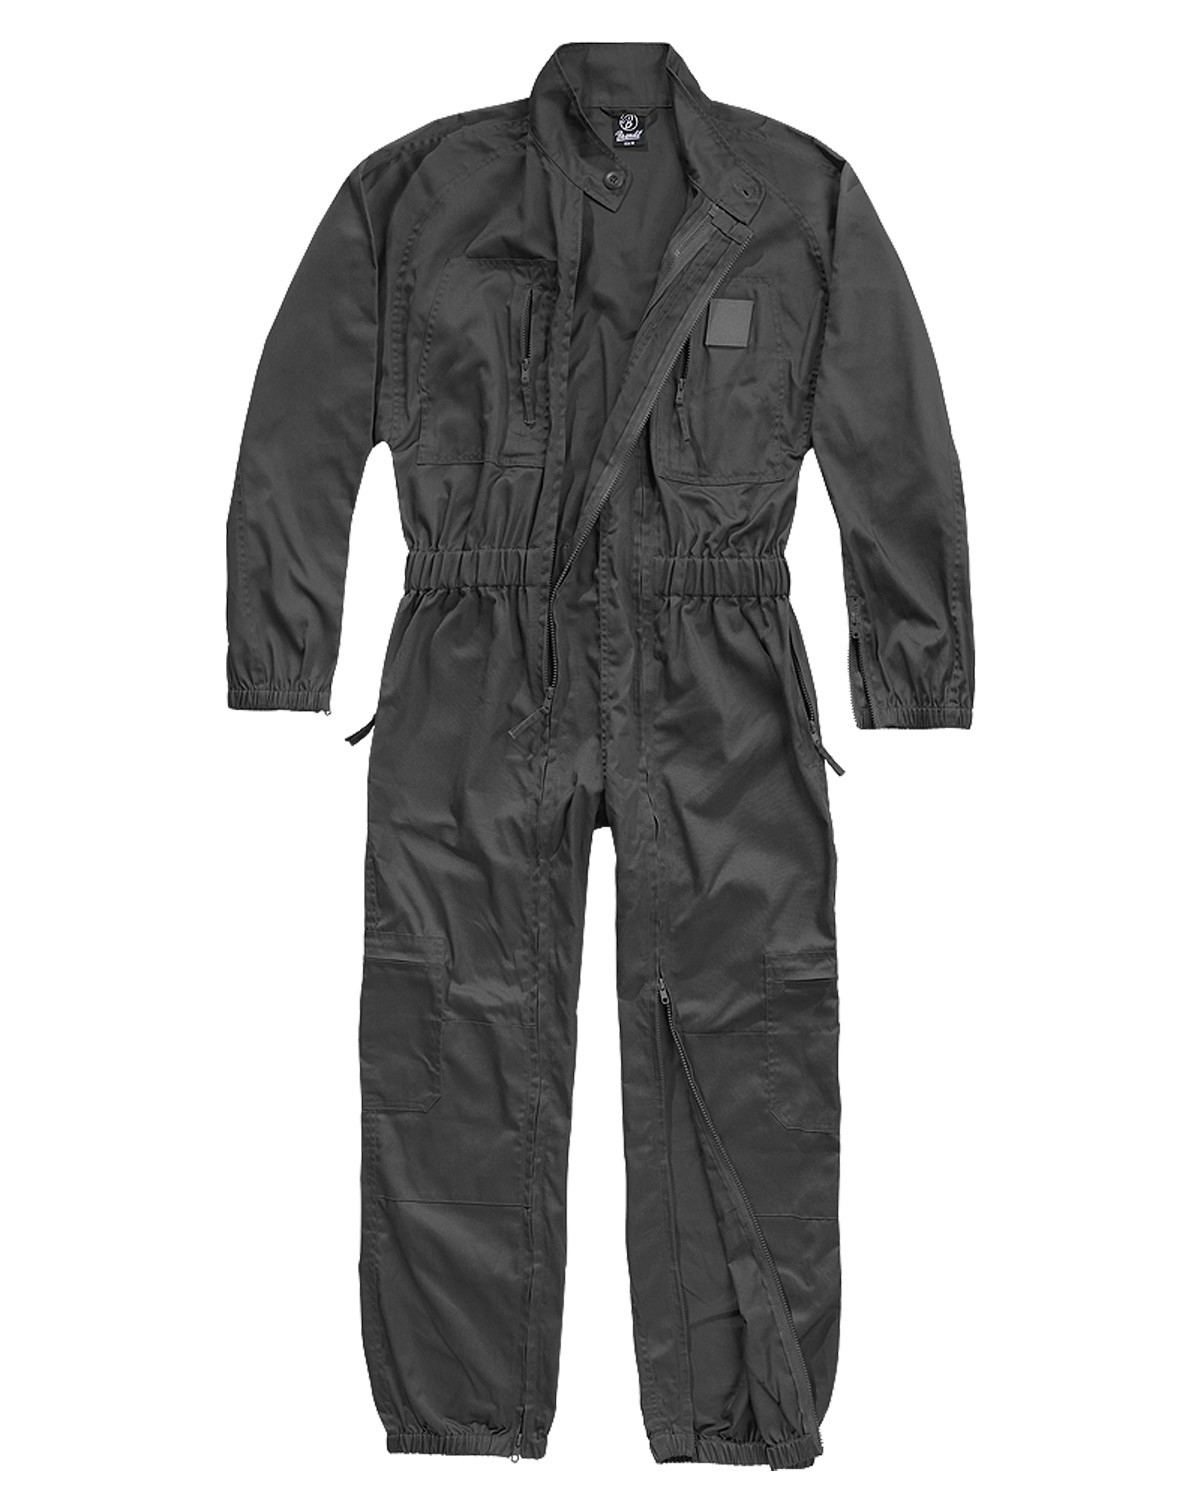 Image of   Brandit Heldragt - Flightsuit u. Foer (Antracit, XL)